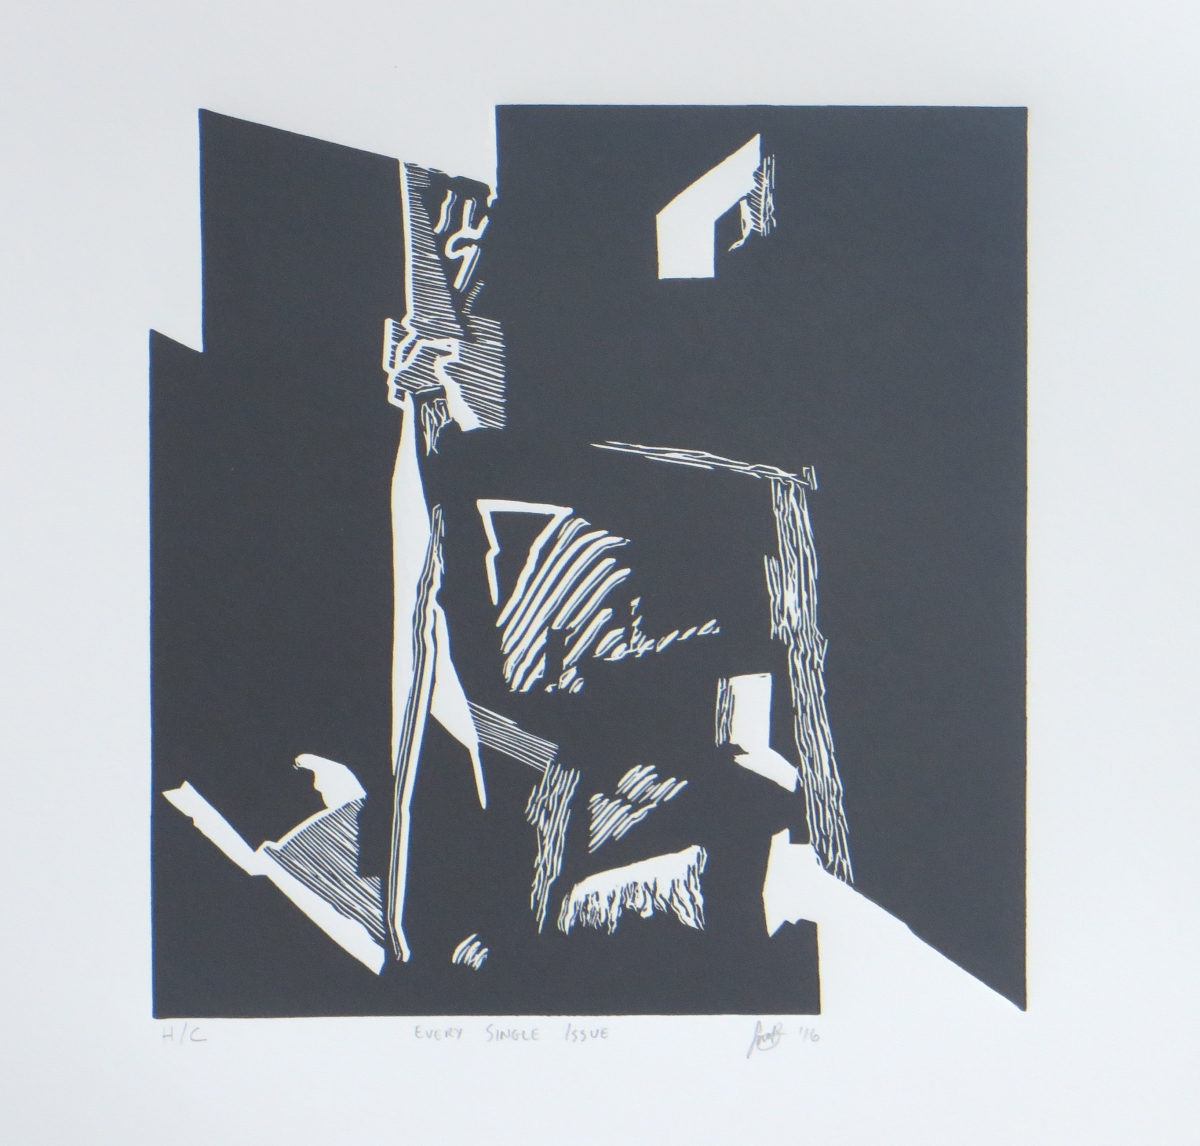 Every Single Issue   Simnikiwe Buhlungu  Linocut  335 x 335 mm  Edition of 20  R 1 340,00 excl. vat